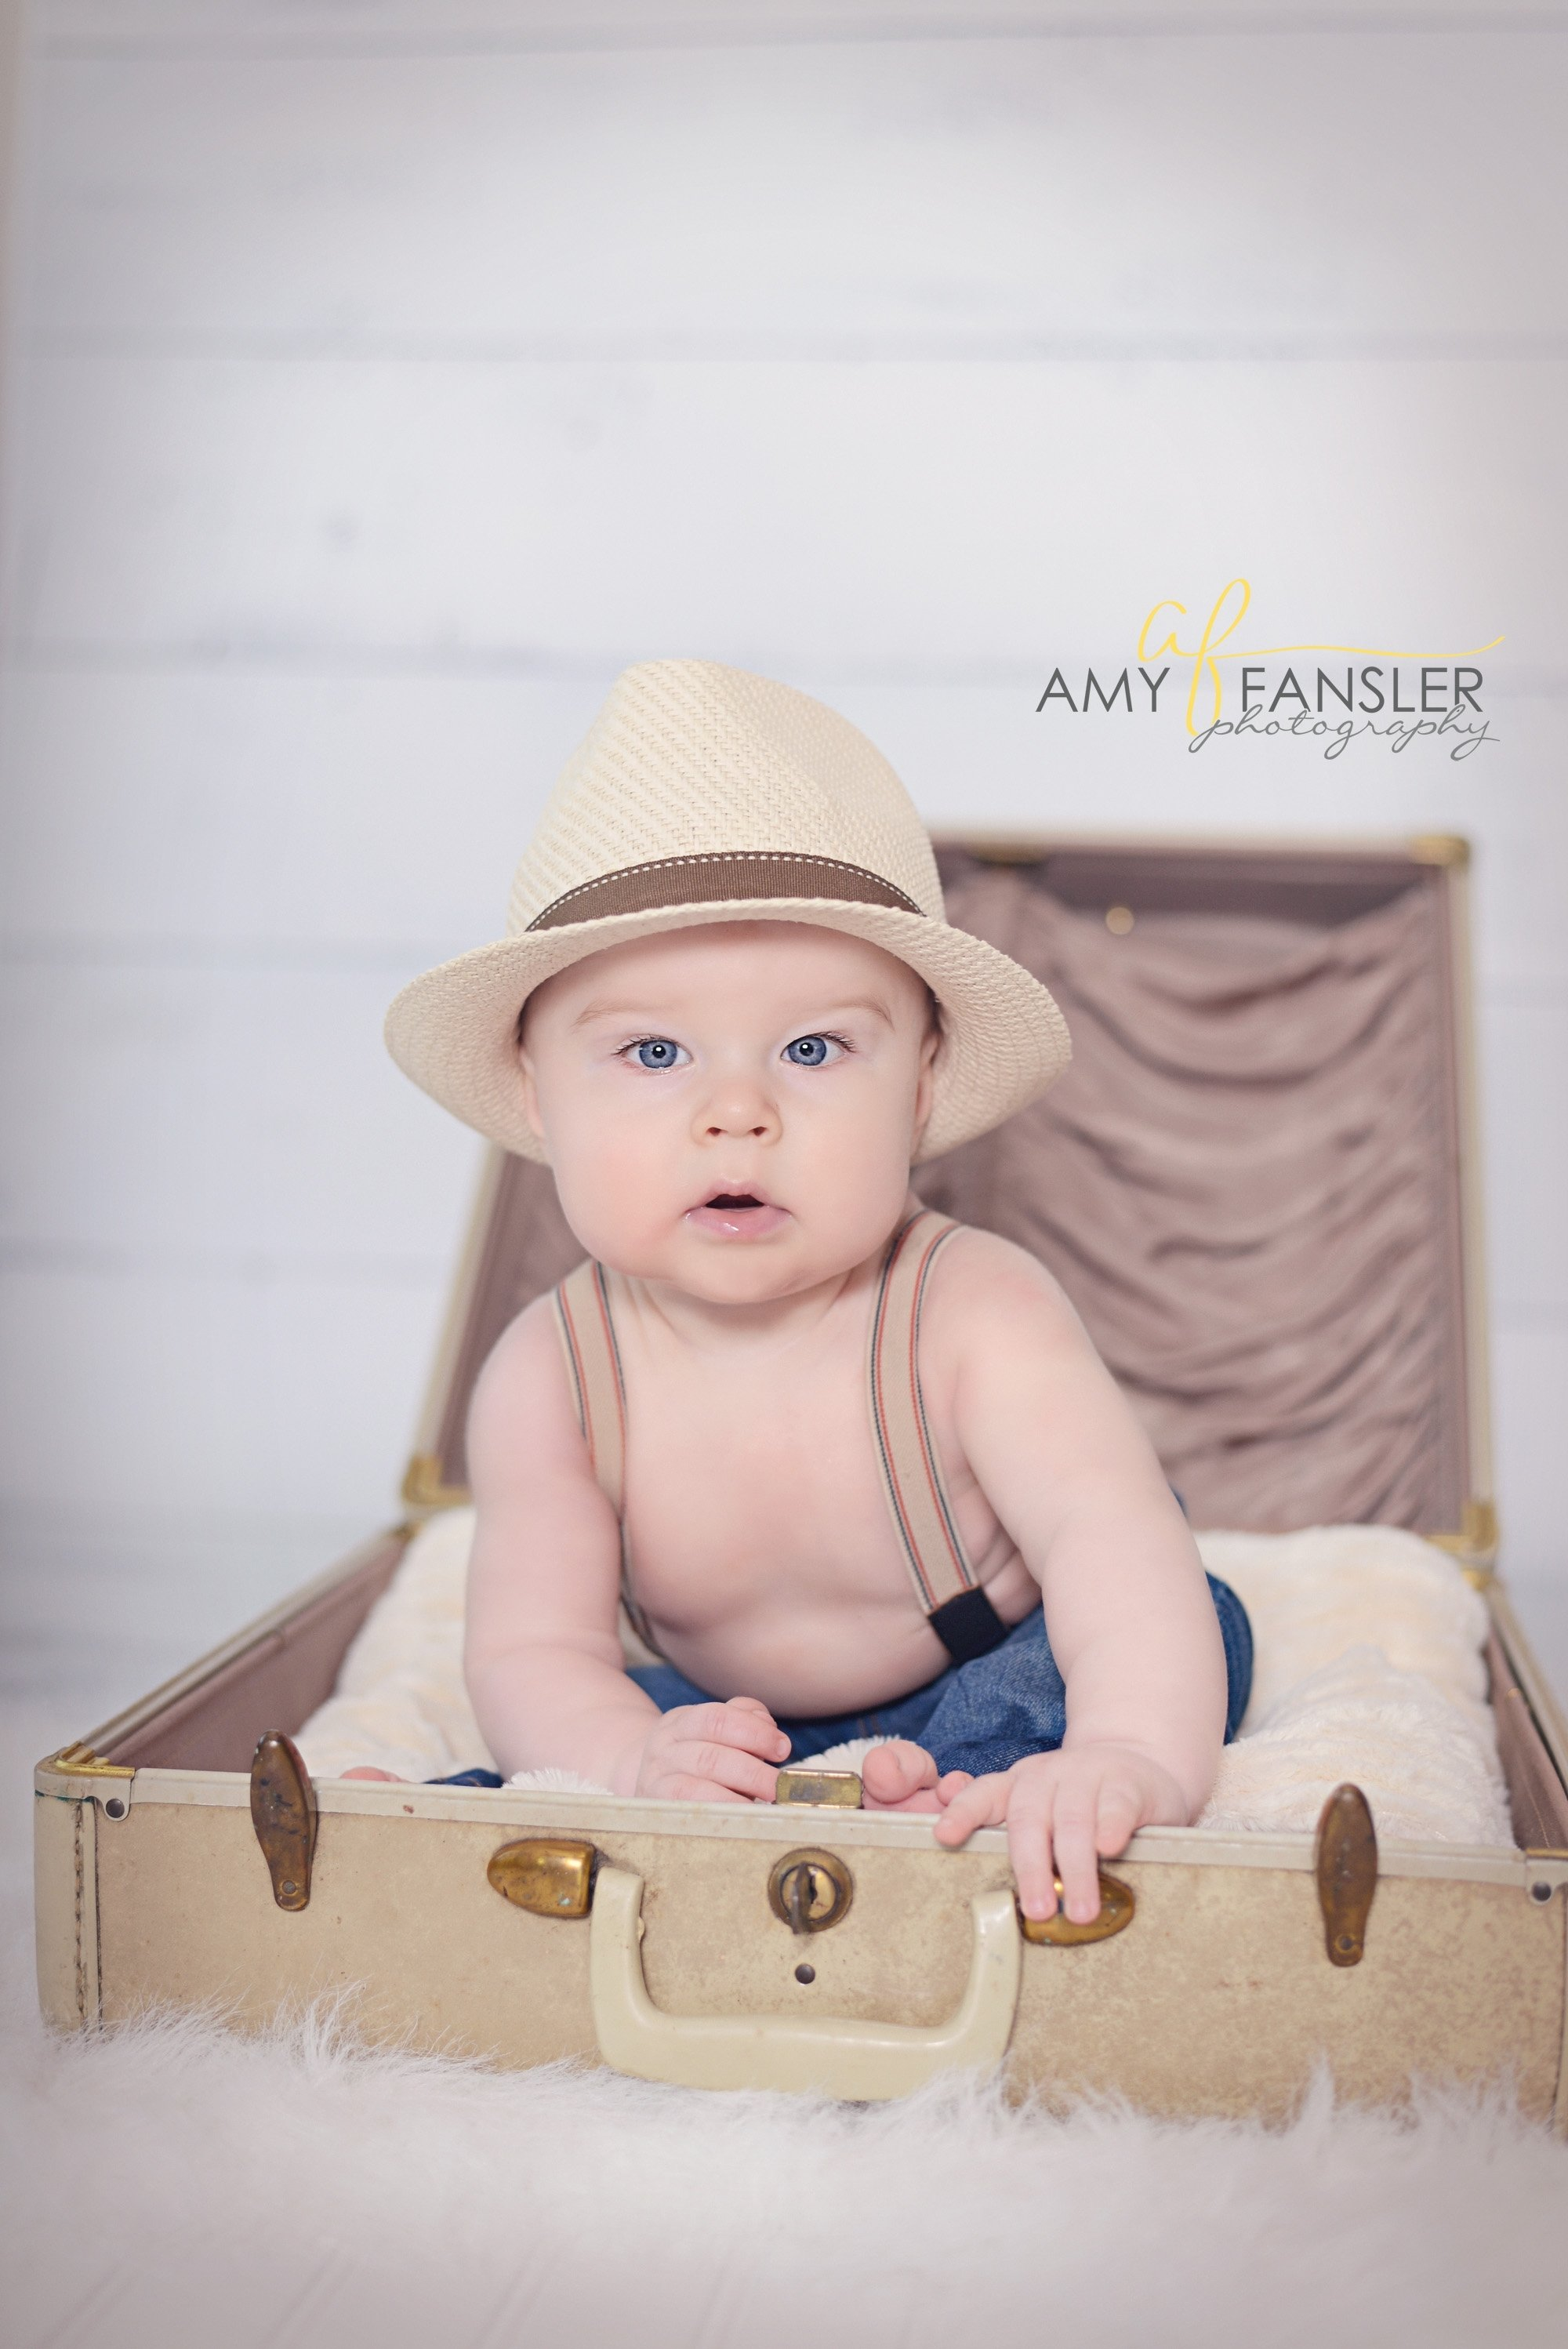 6 month baby session - vintage suitcase suspenders - cute baby boy